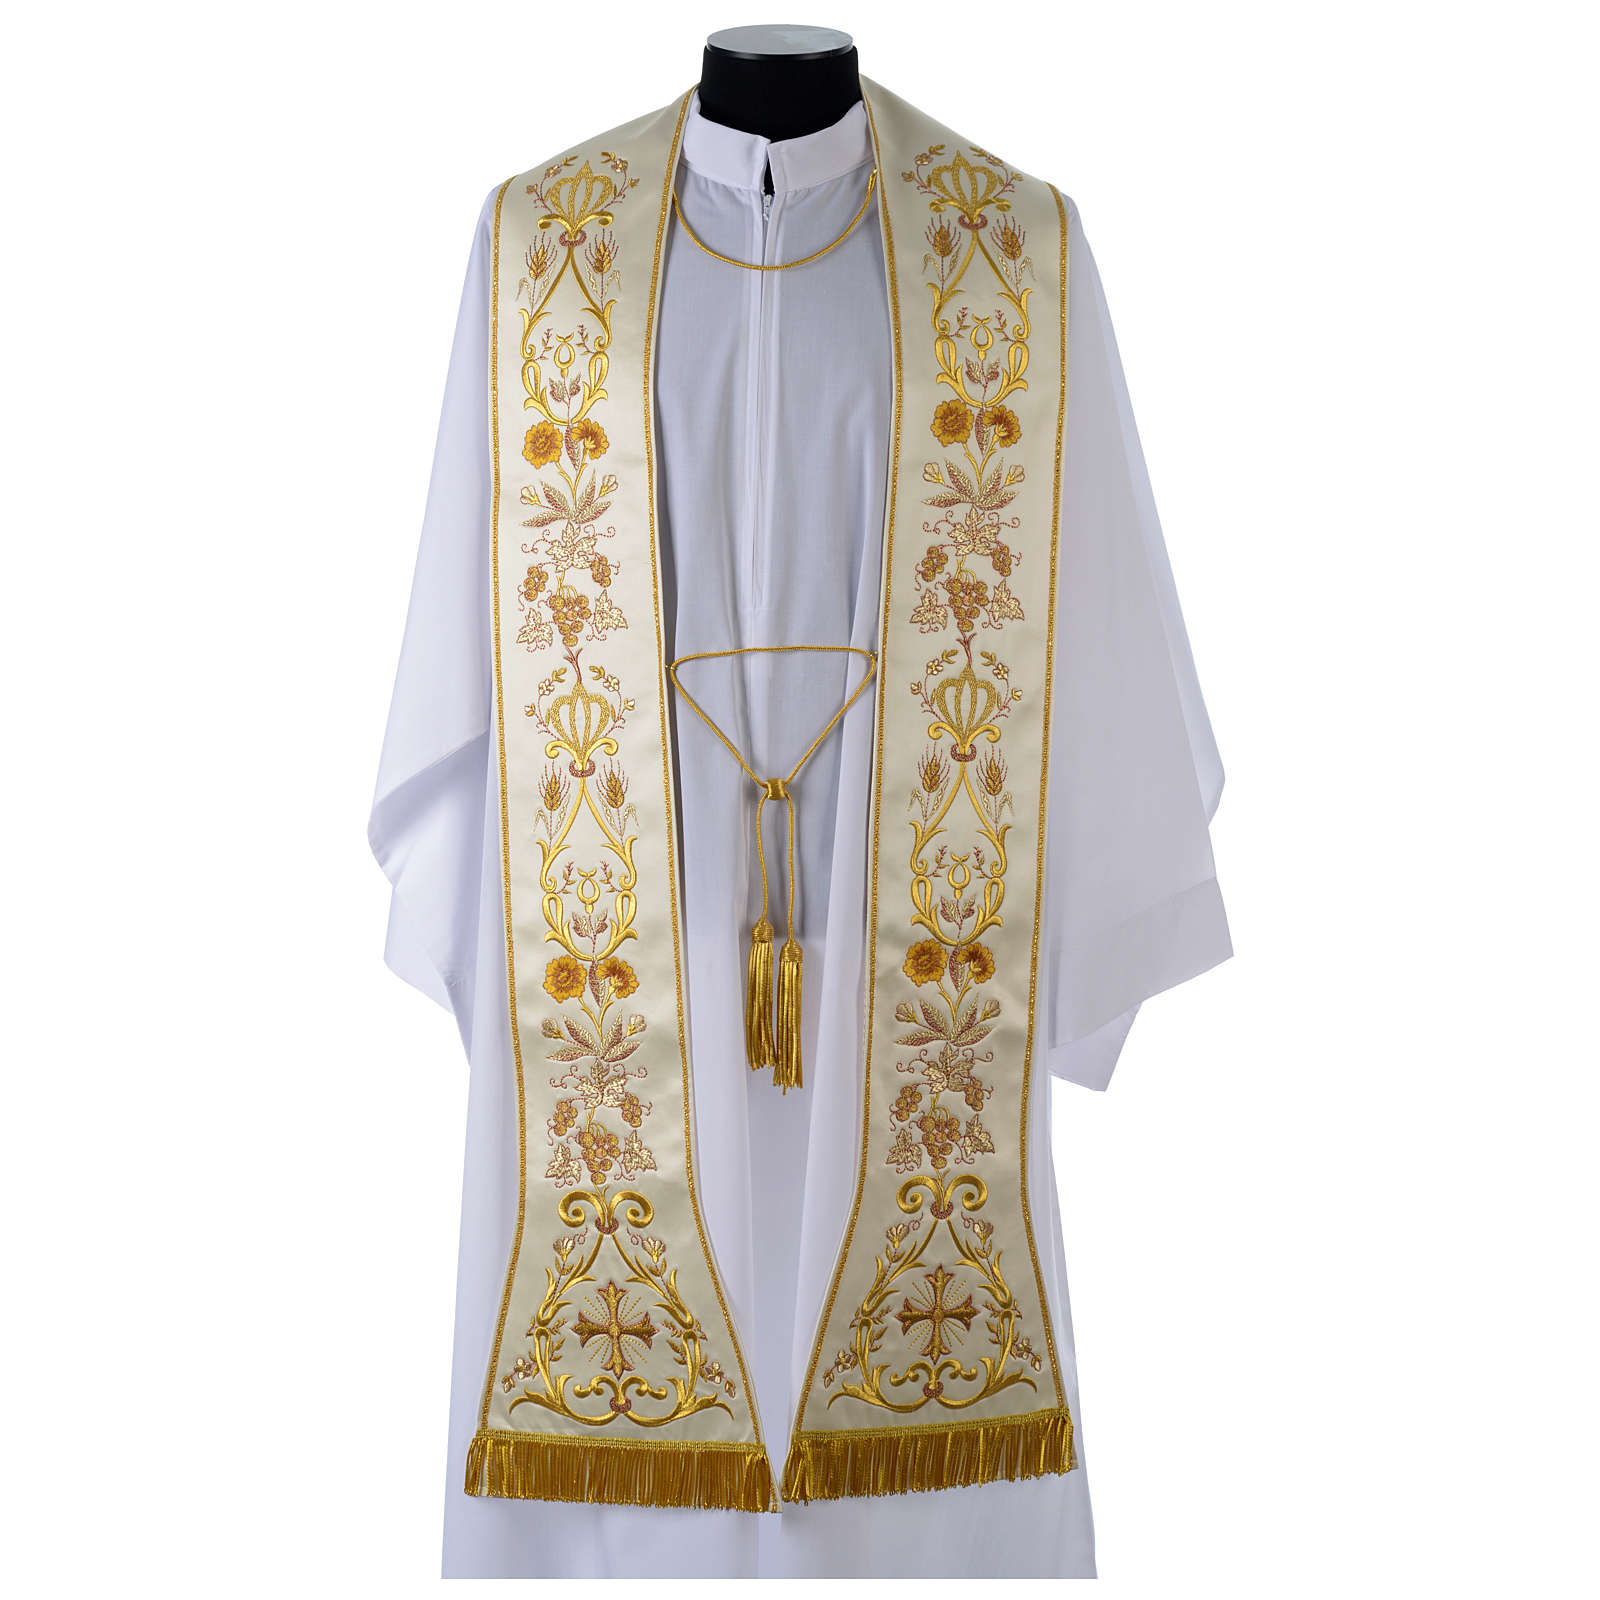 Clergy Stole in satin, machine embroidered with fringes and tassels 4